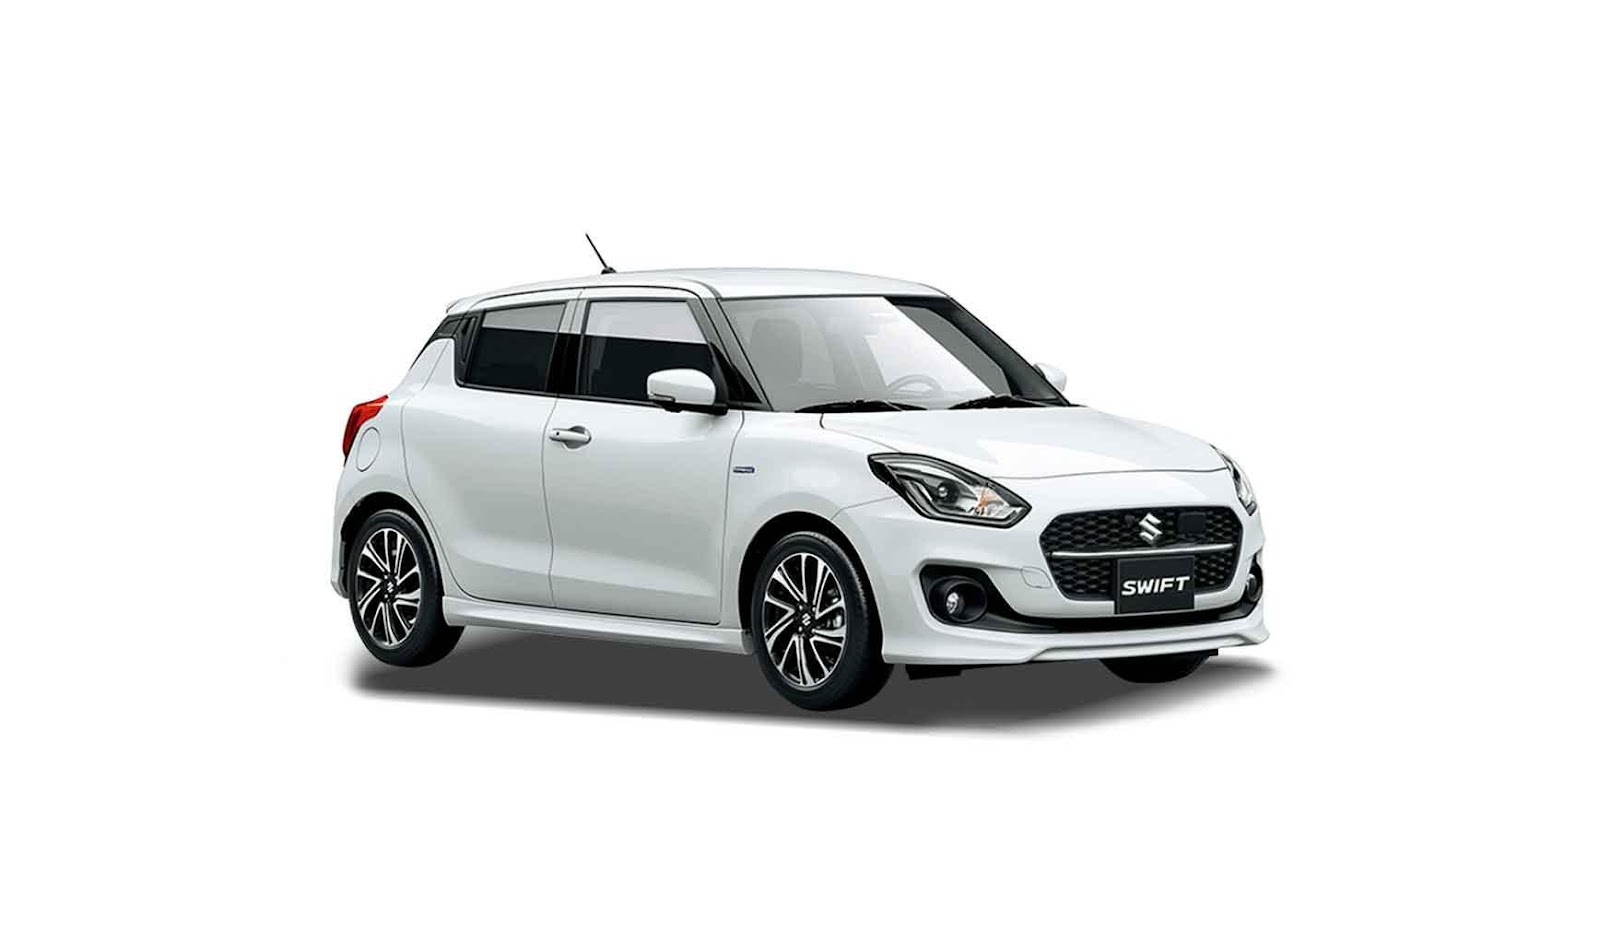 under-10-lakhs-upcoming-car-india-swift